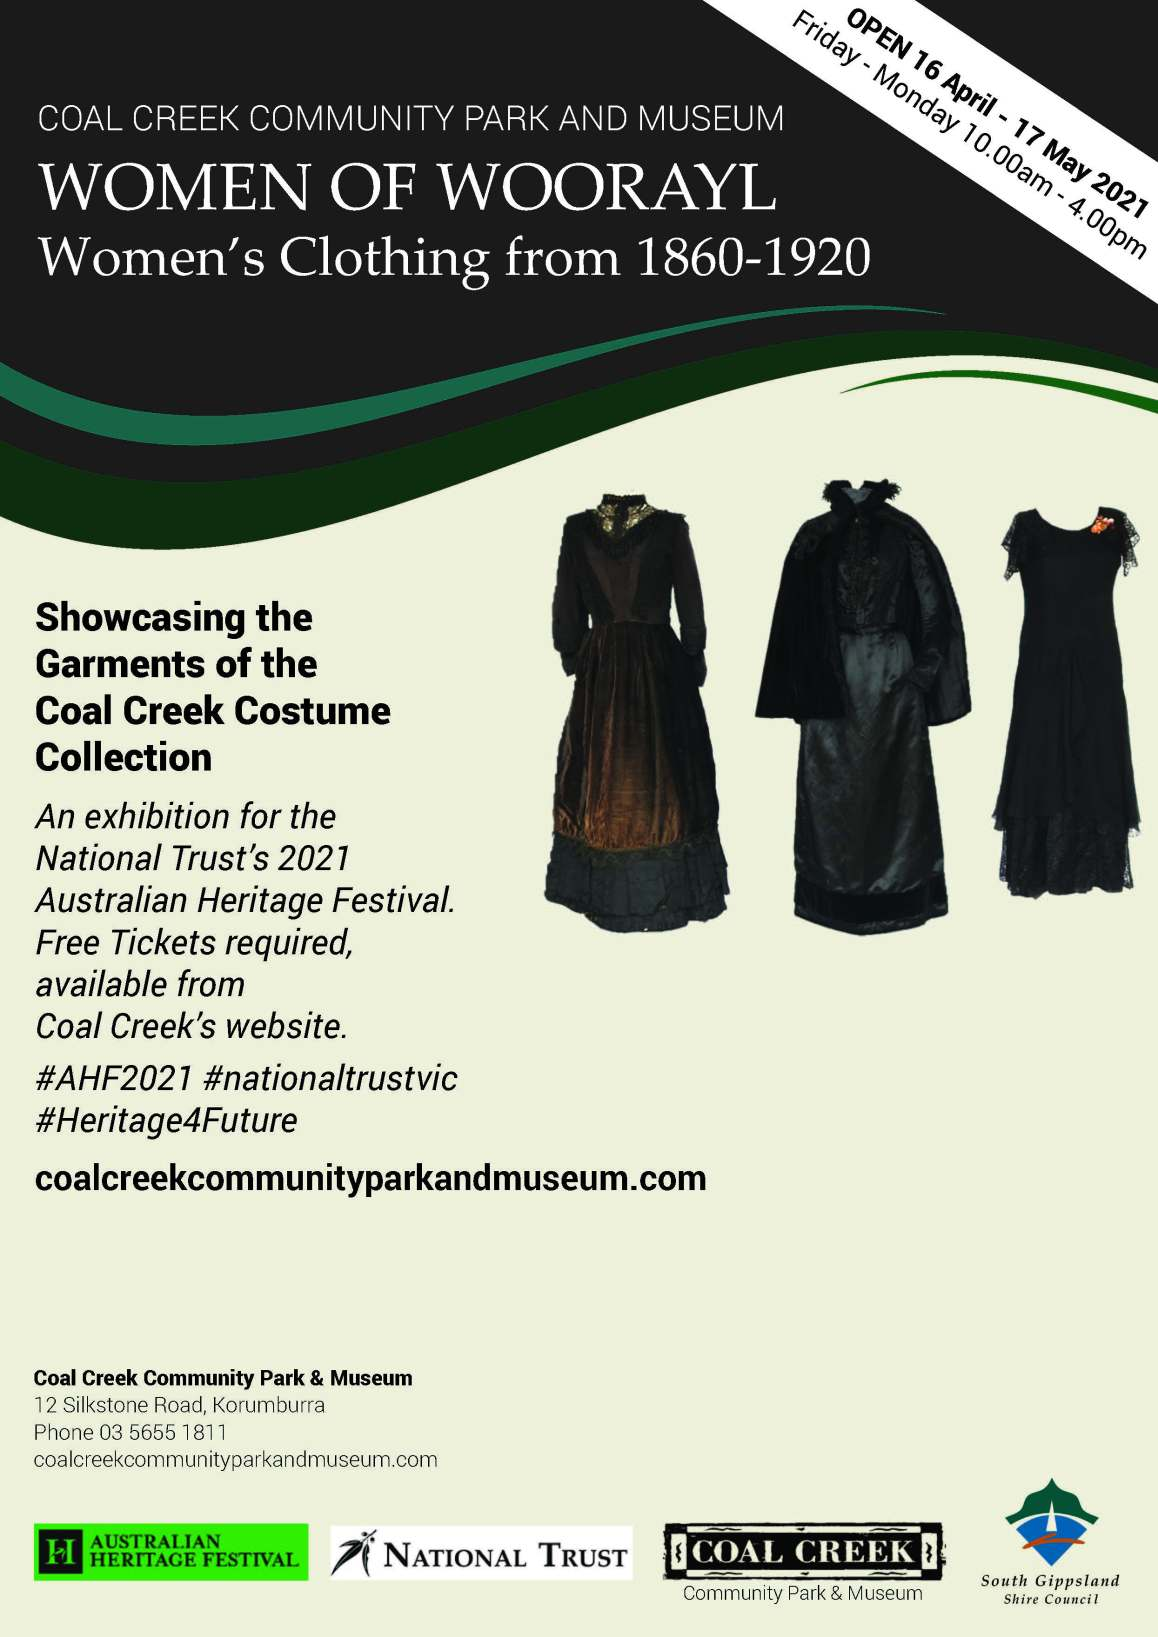 Women's Clothing Exhibition Flyer